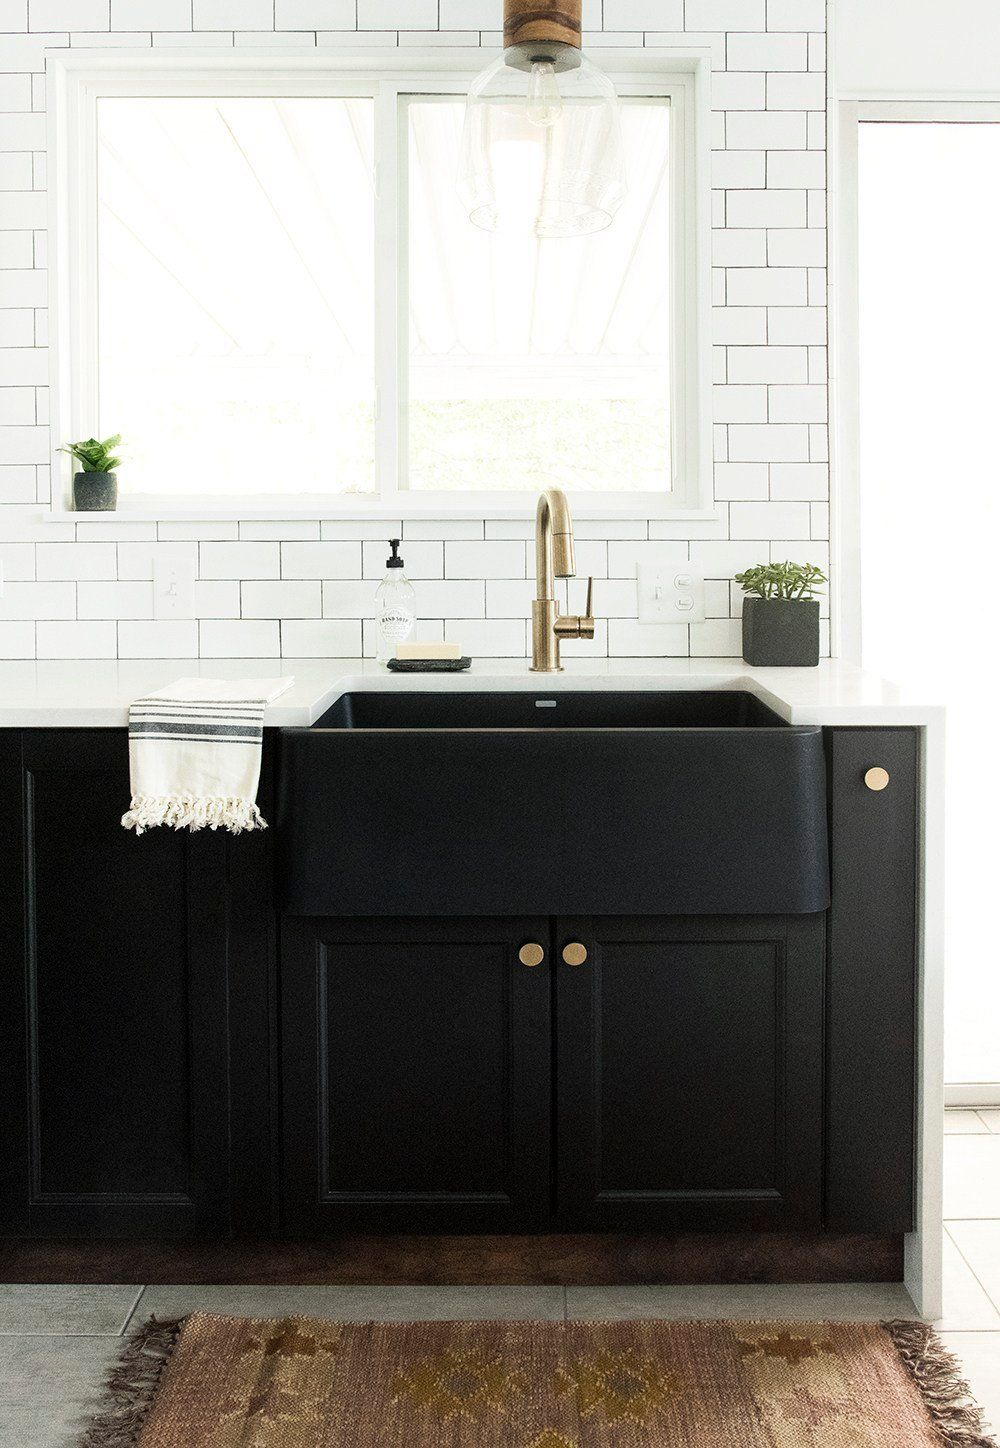 How To Choose A Kitchen Sink With Images Black Appliances Kitchen Farmhouse Sink Kitchen Black Kitchens